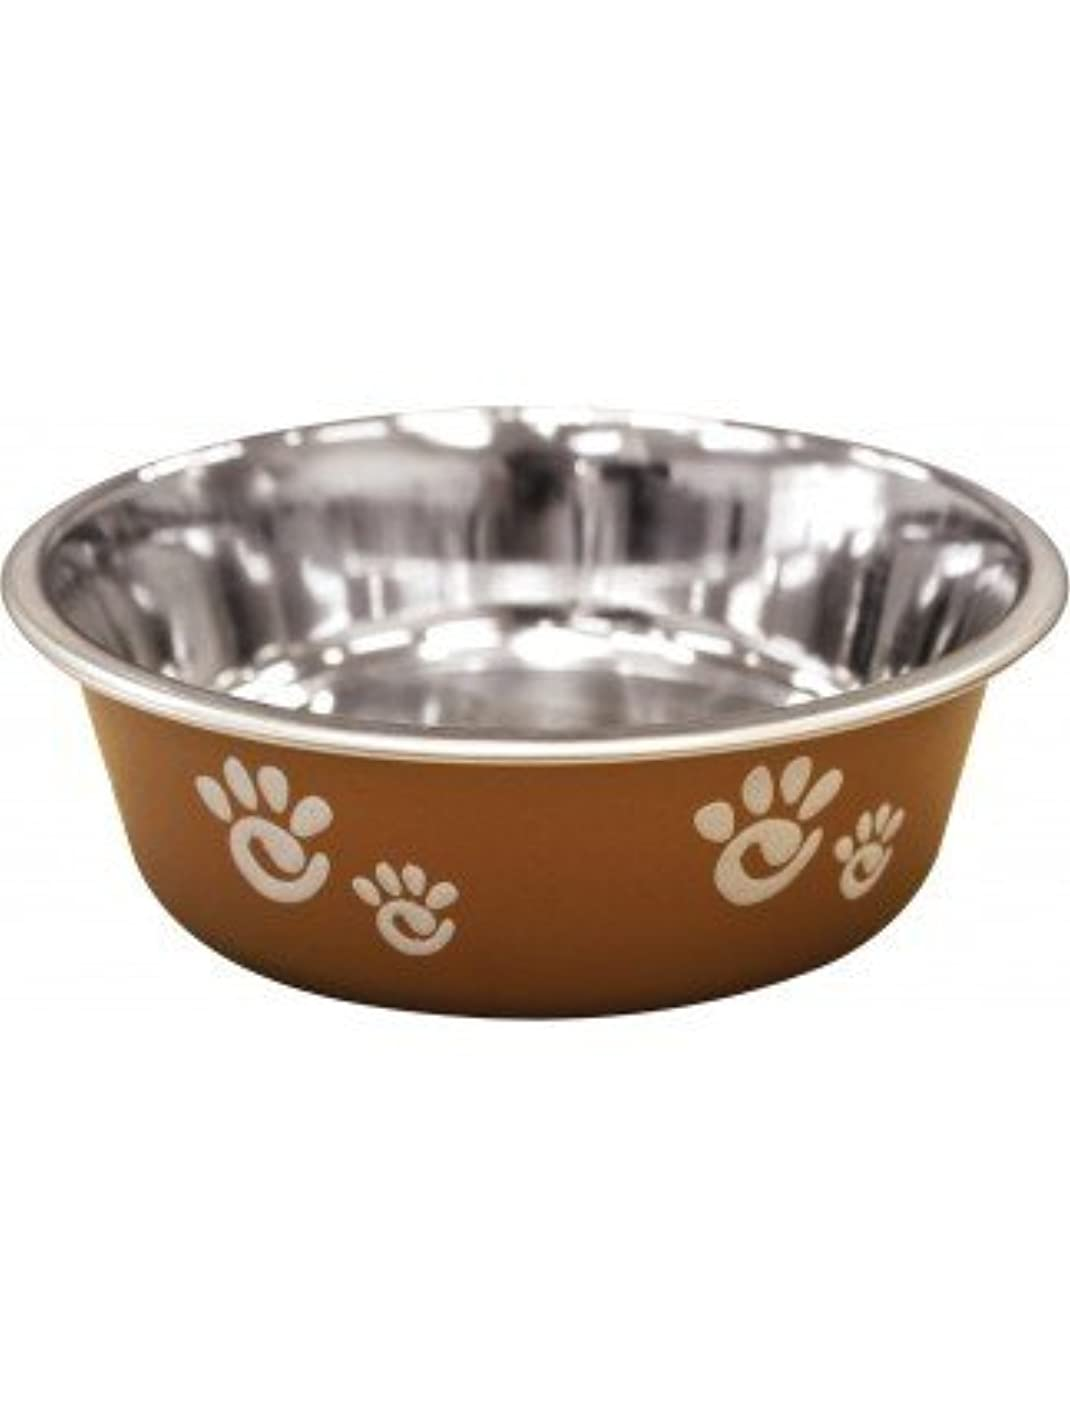 Ethical Ss Dishes-Barcelona Dish- Copper 16 Oz